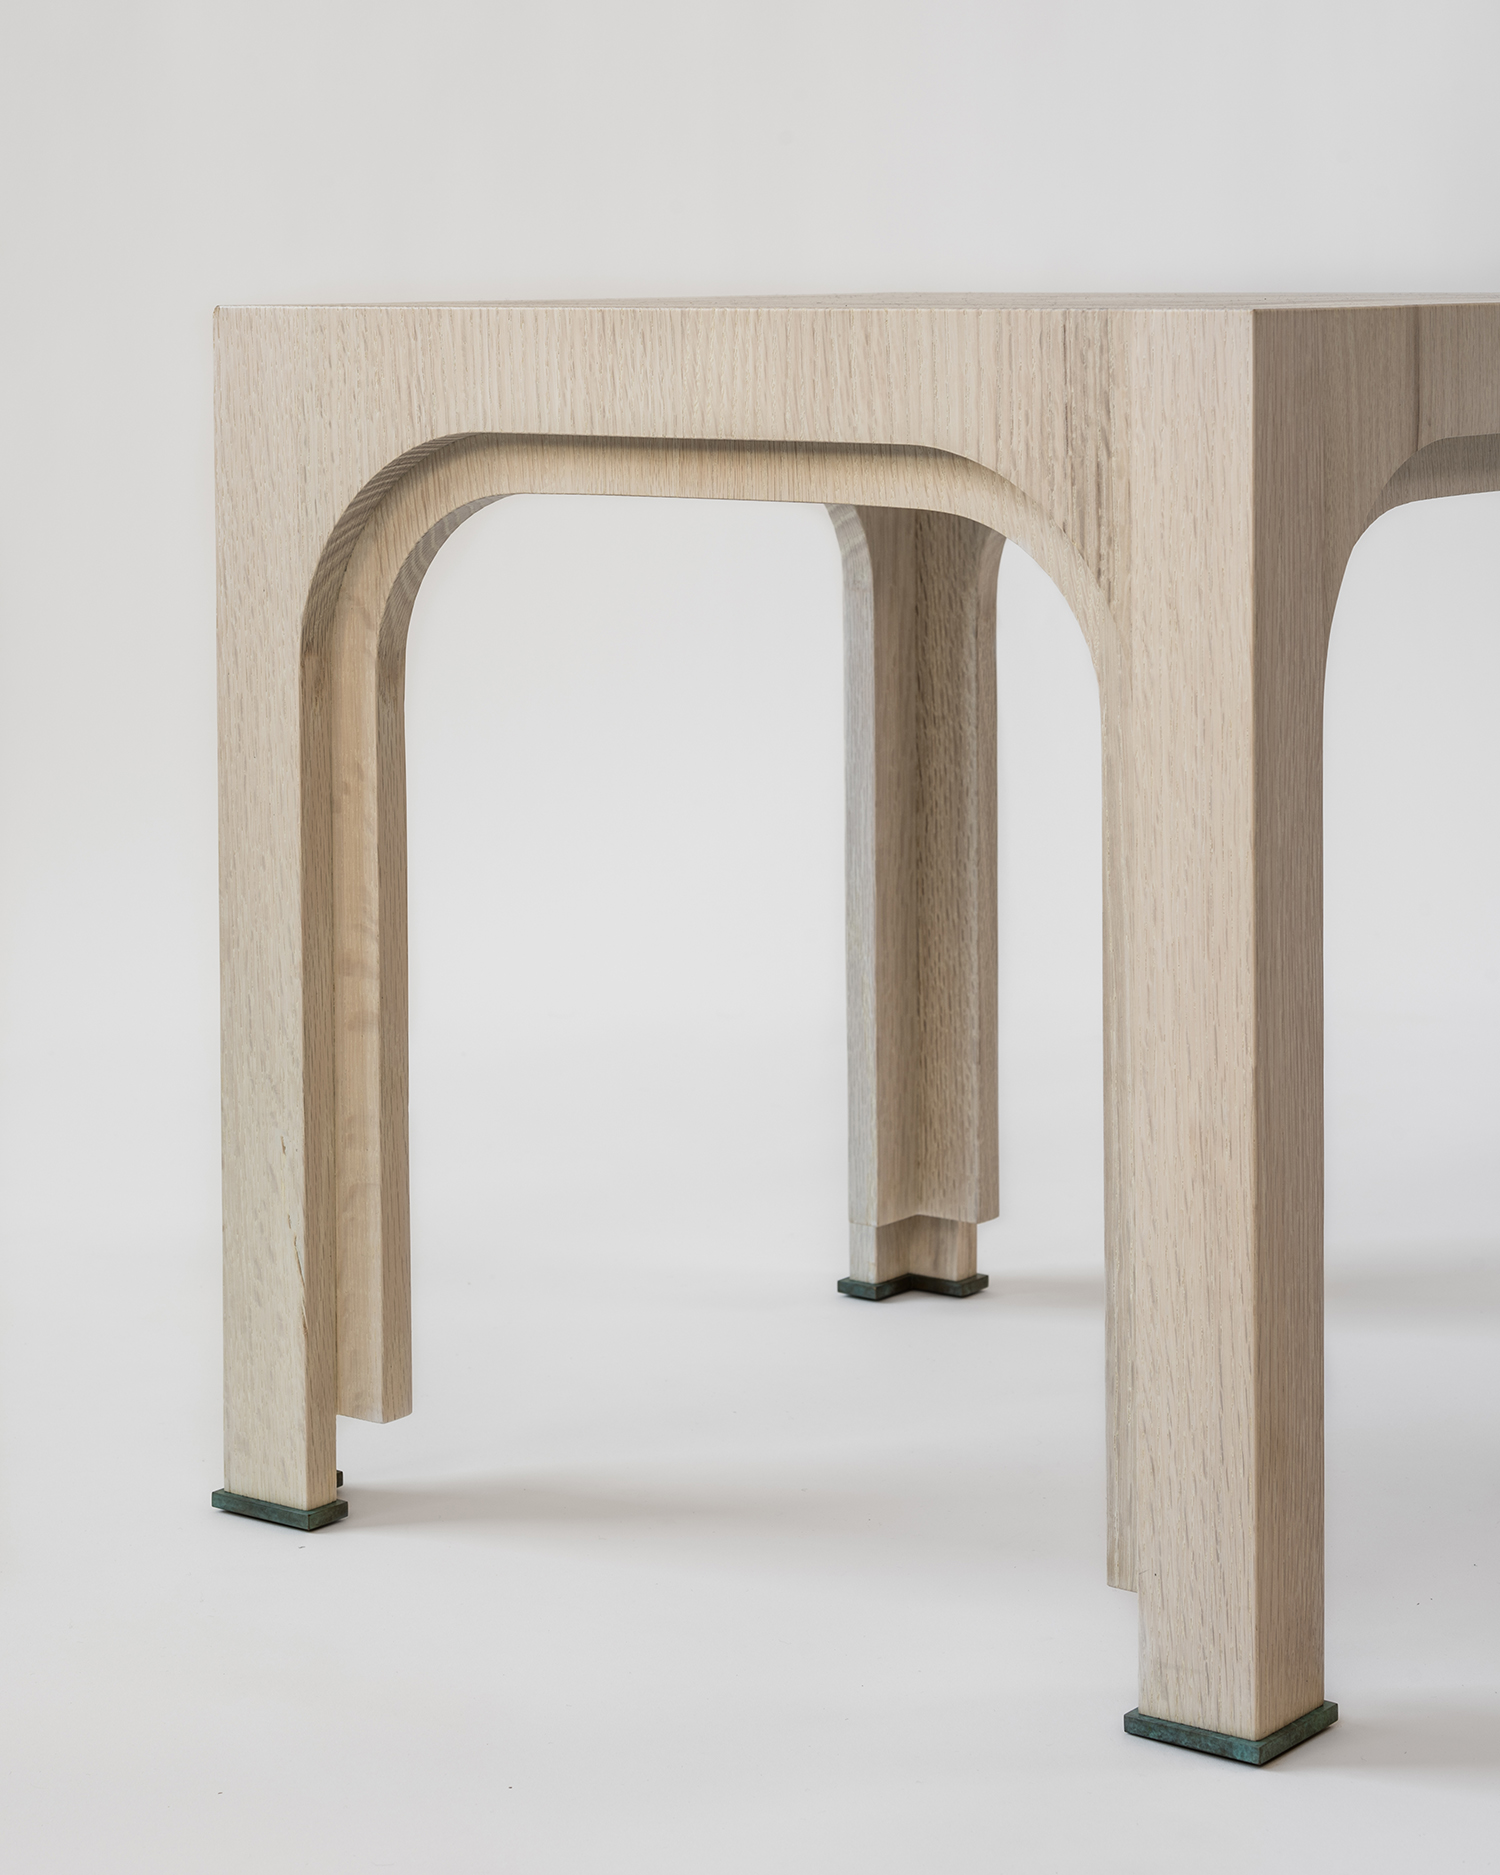 arc red oak legs.jpg